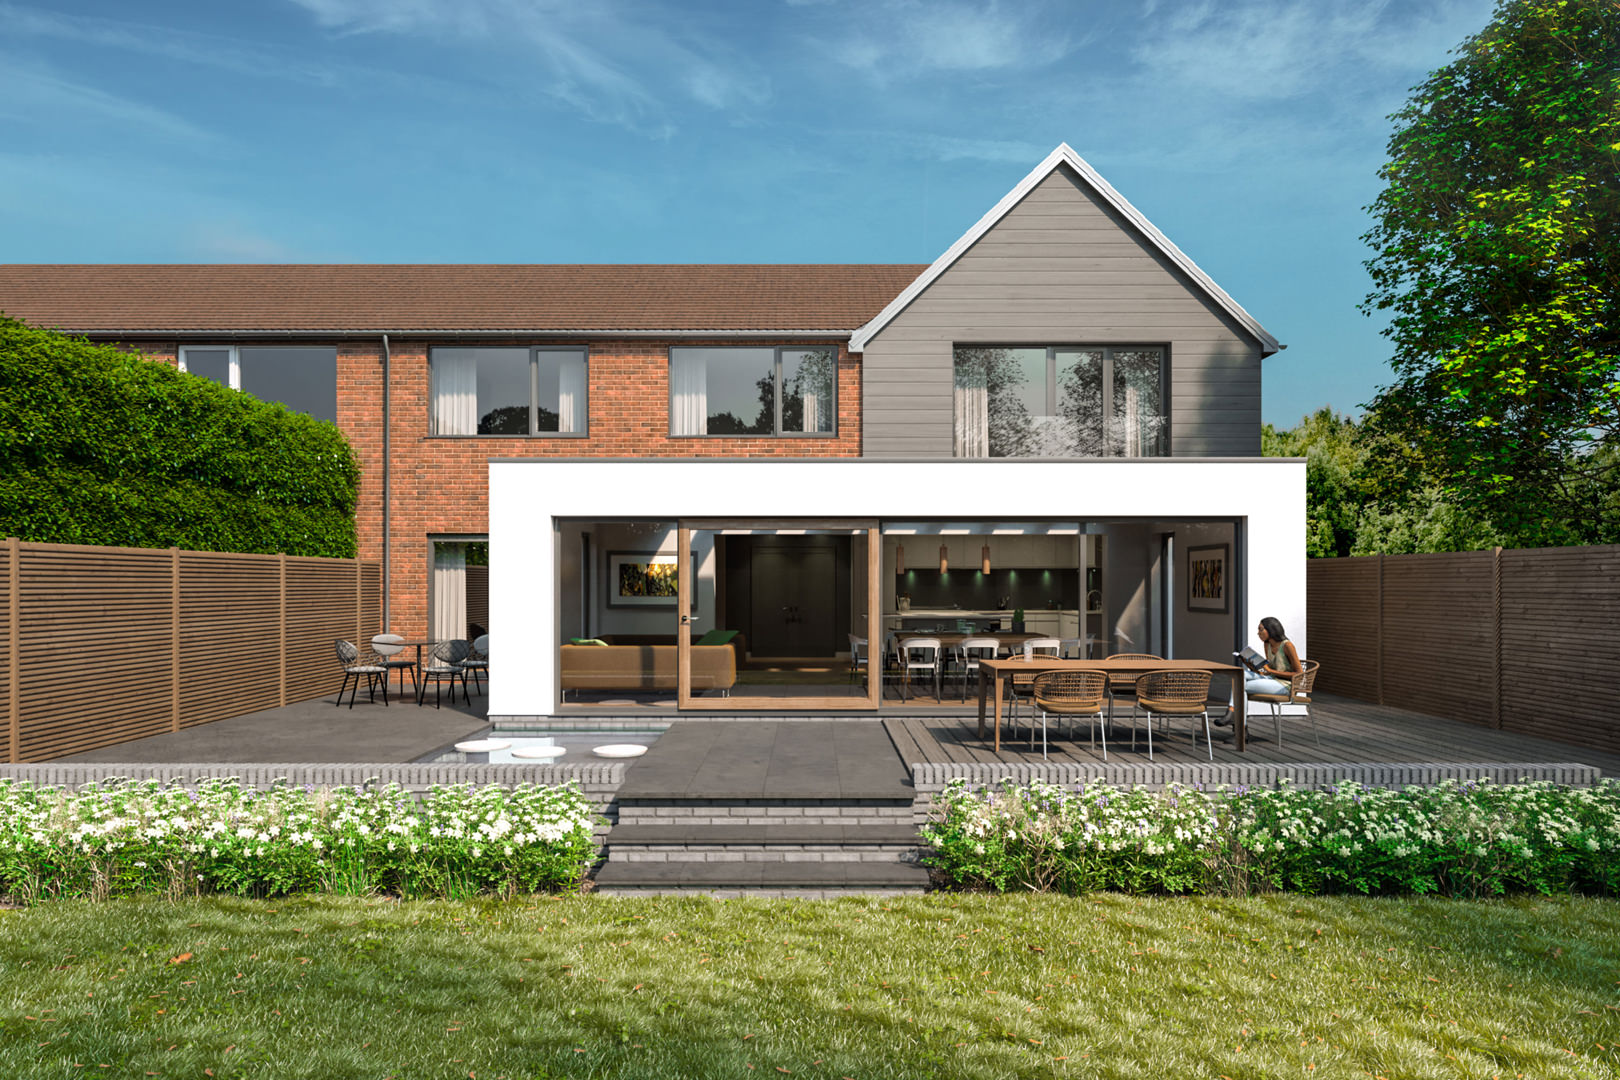 This 3 bedroom semi-detached house has been transformed with a two storey side and single storey rear extension to create a large 4 bedroom home with large siding doors in an 8m wide glazed opening onto the garden in Ampthill Bedfordshire